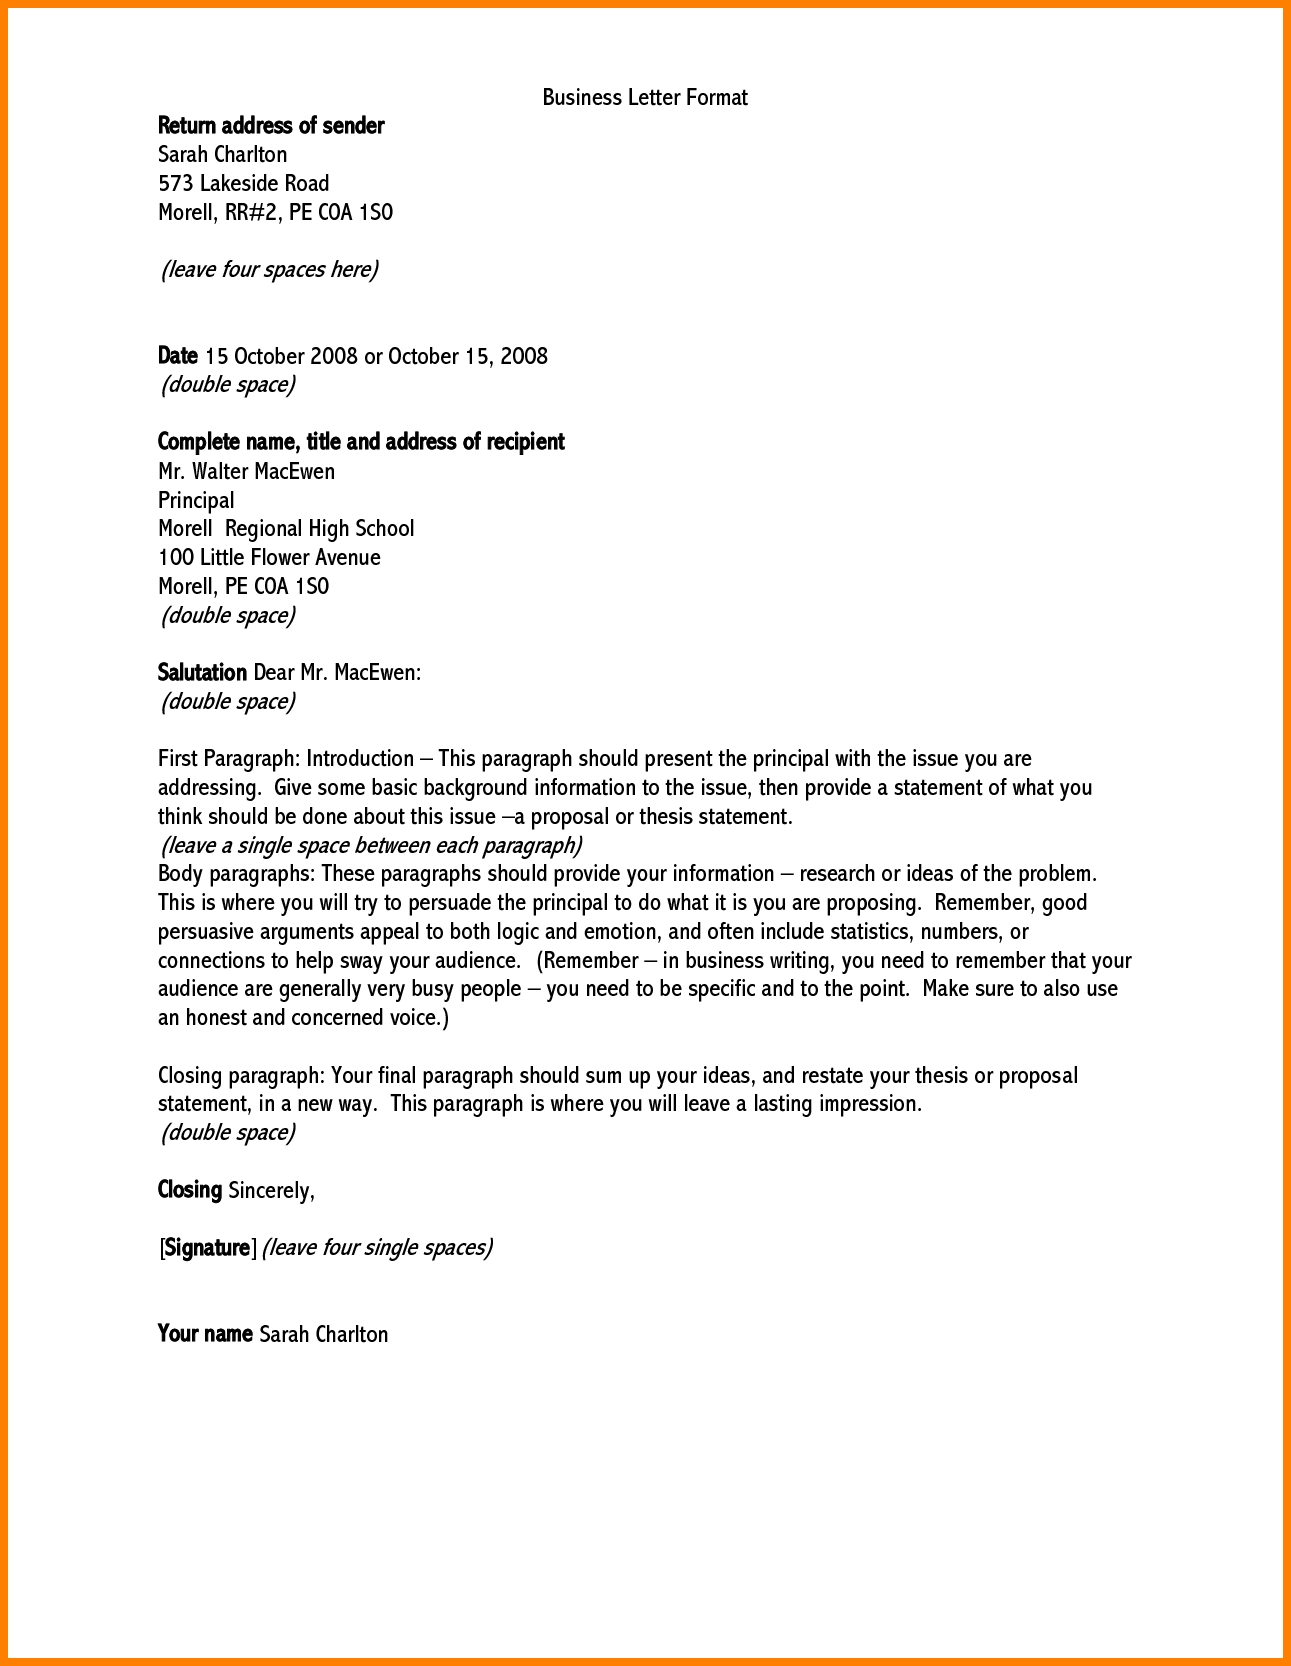 How To Address A Business Letter Scrumps